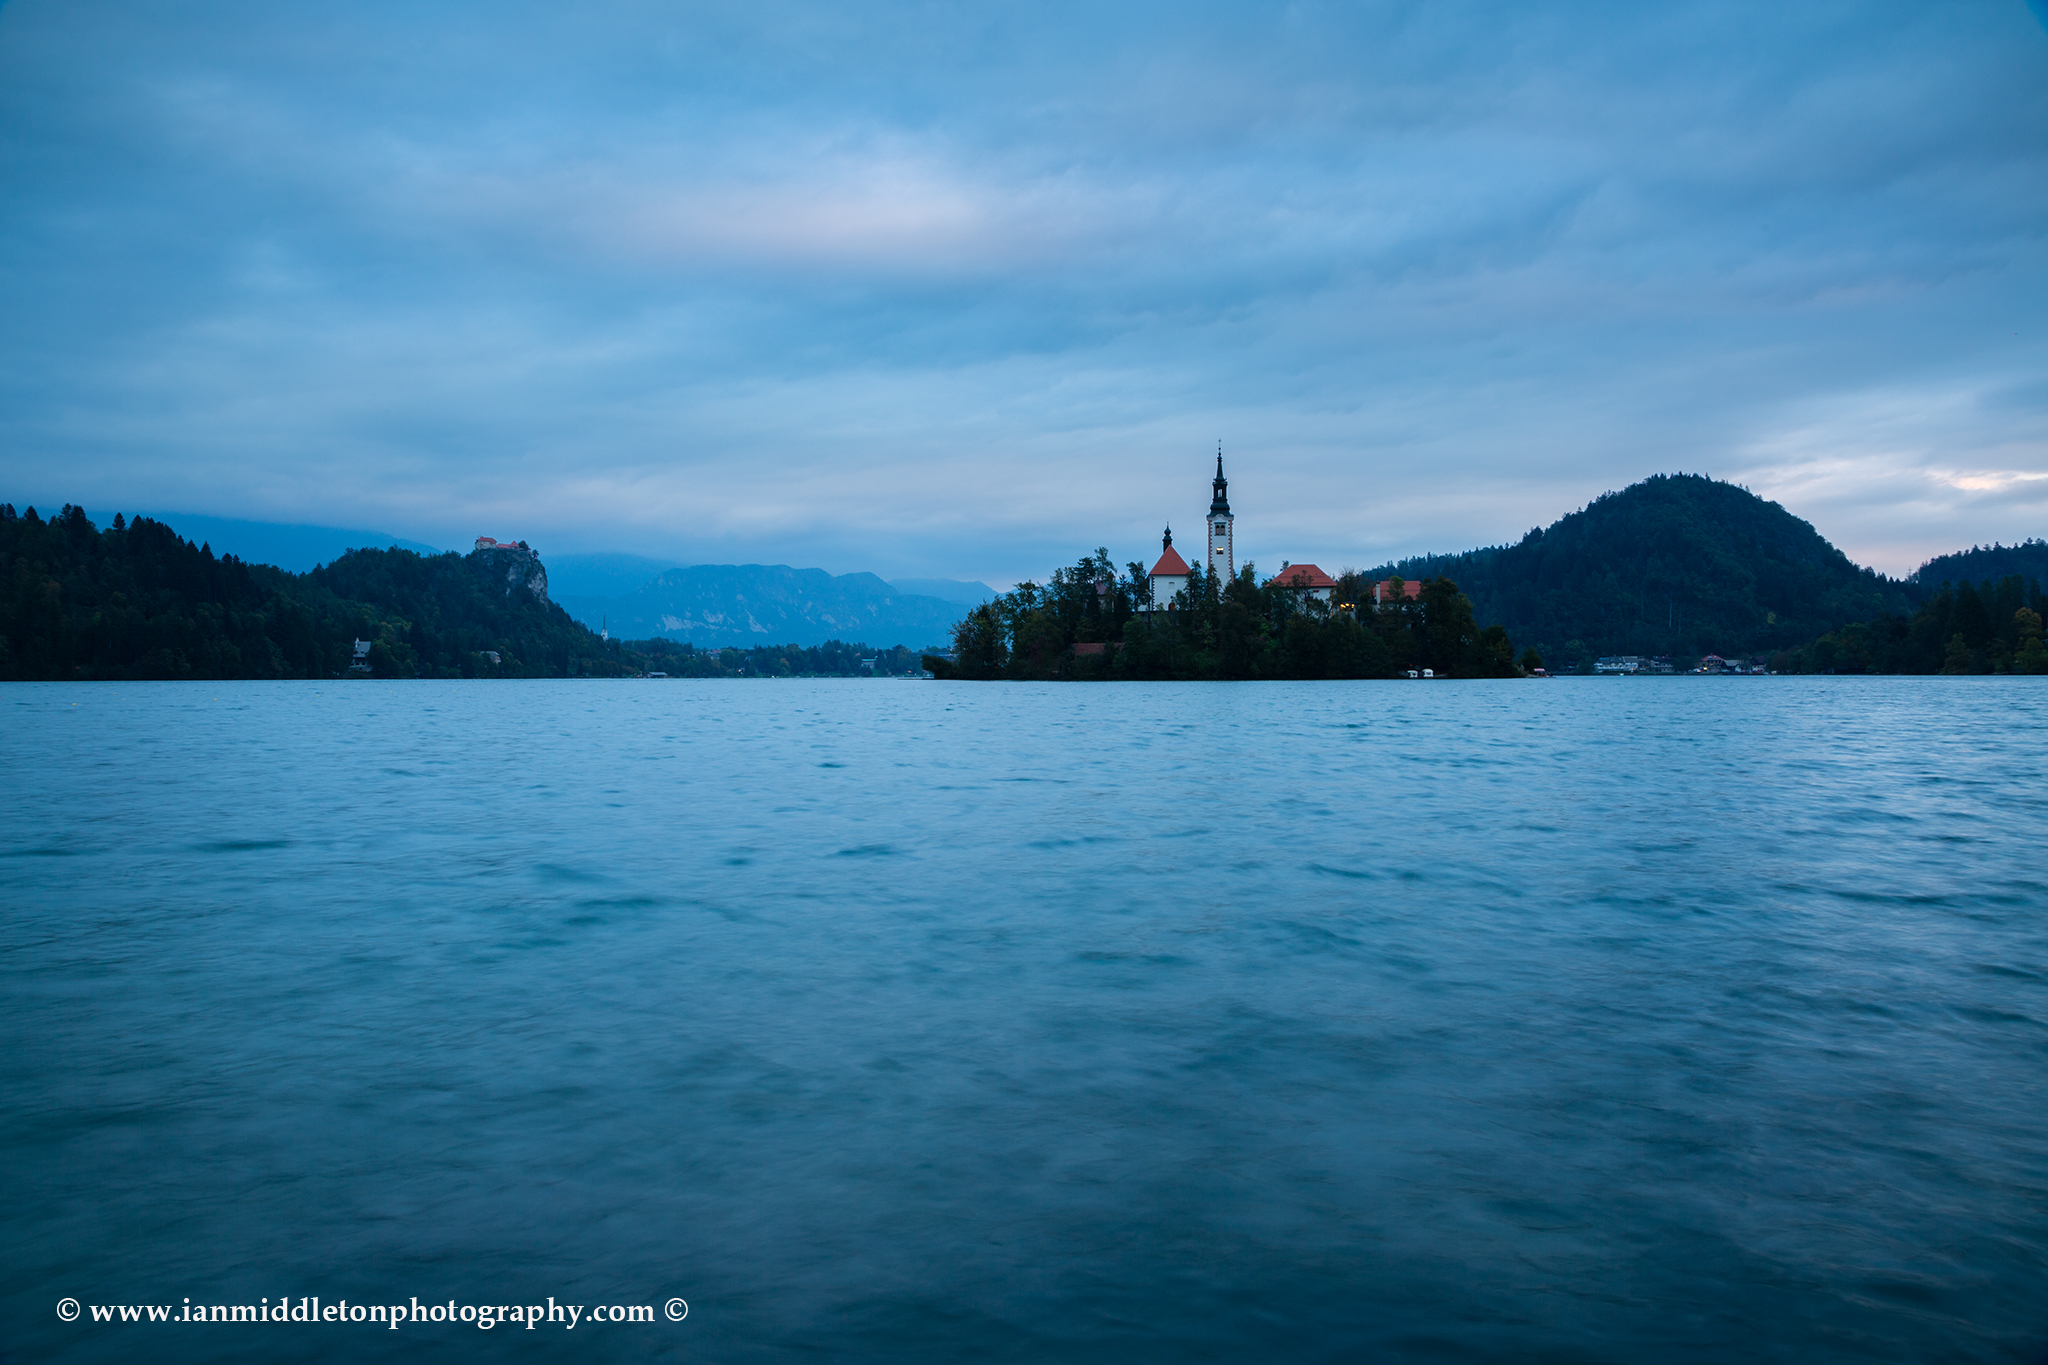 View across the beautiful Lake Bled, island church and hilltop castle at dusk, Slovenia.